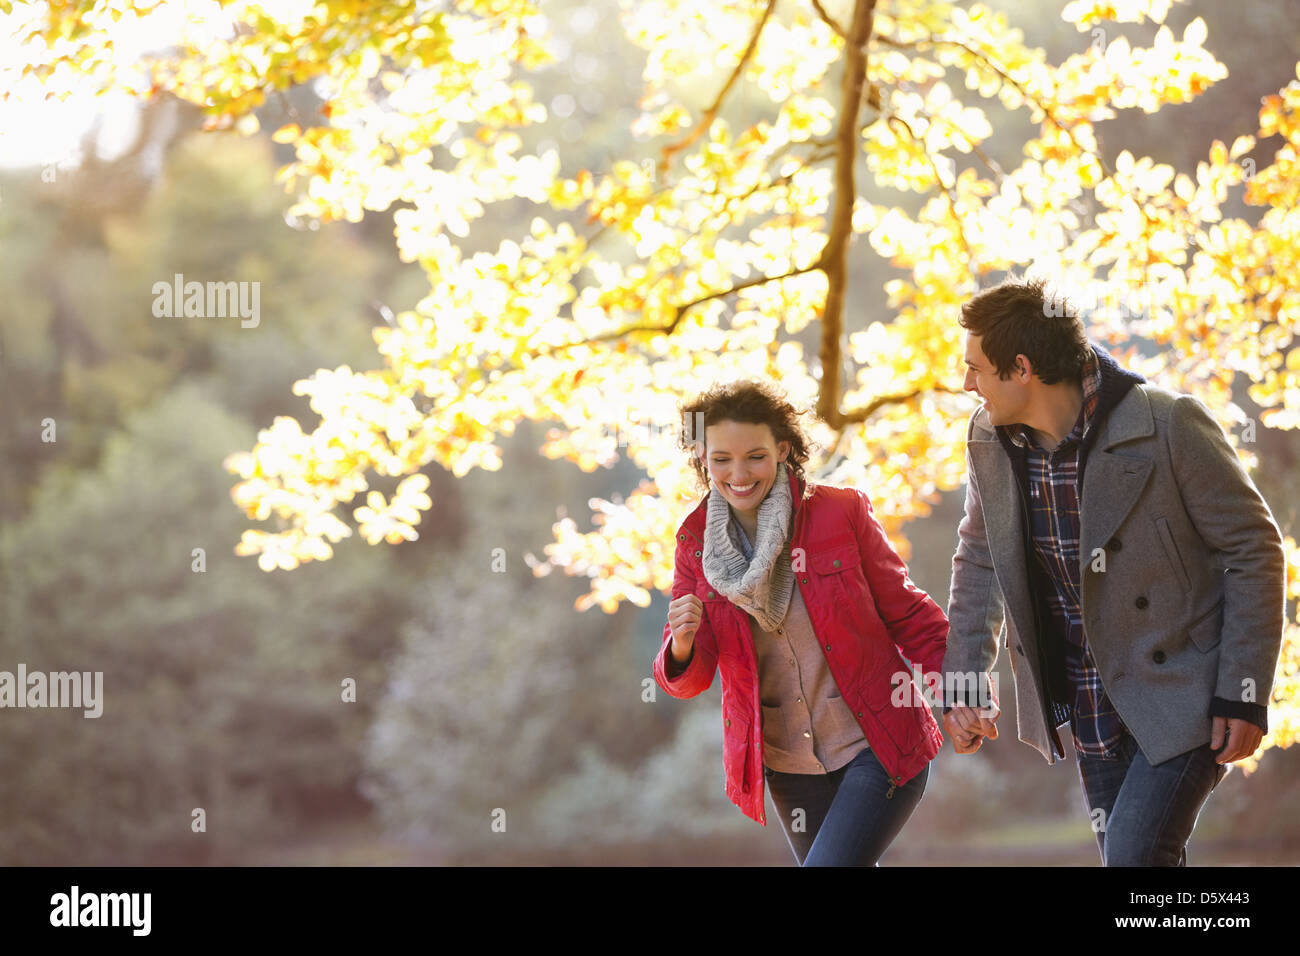 Couple walking together in park - Stock Image